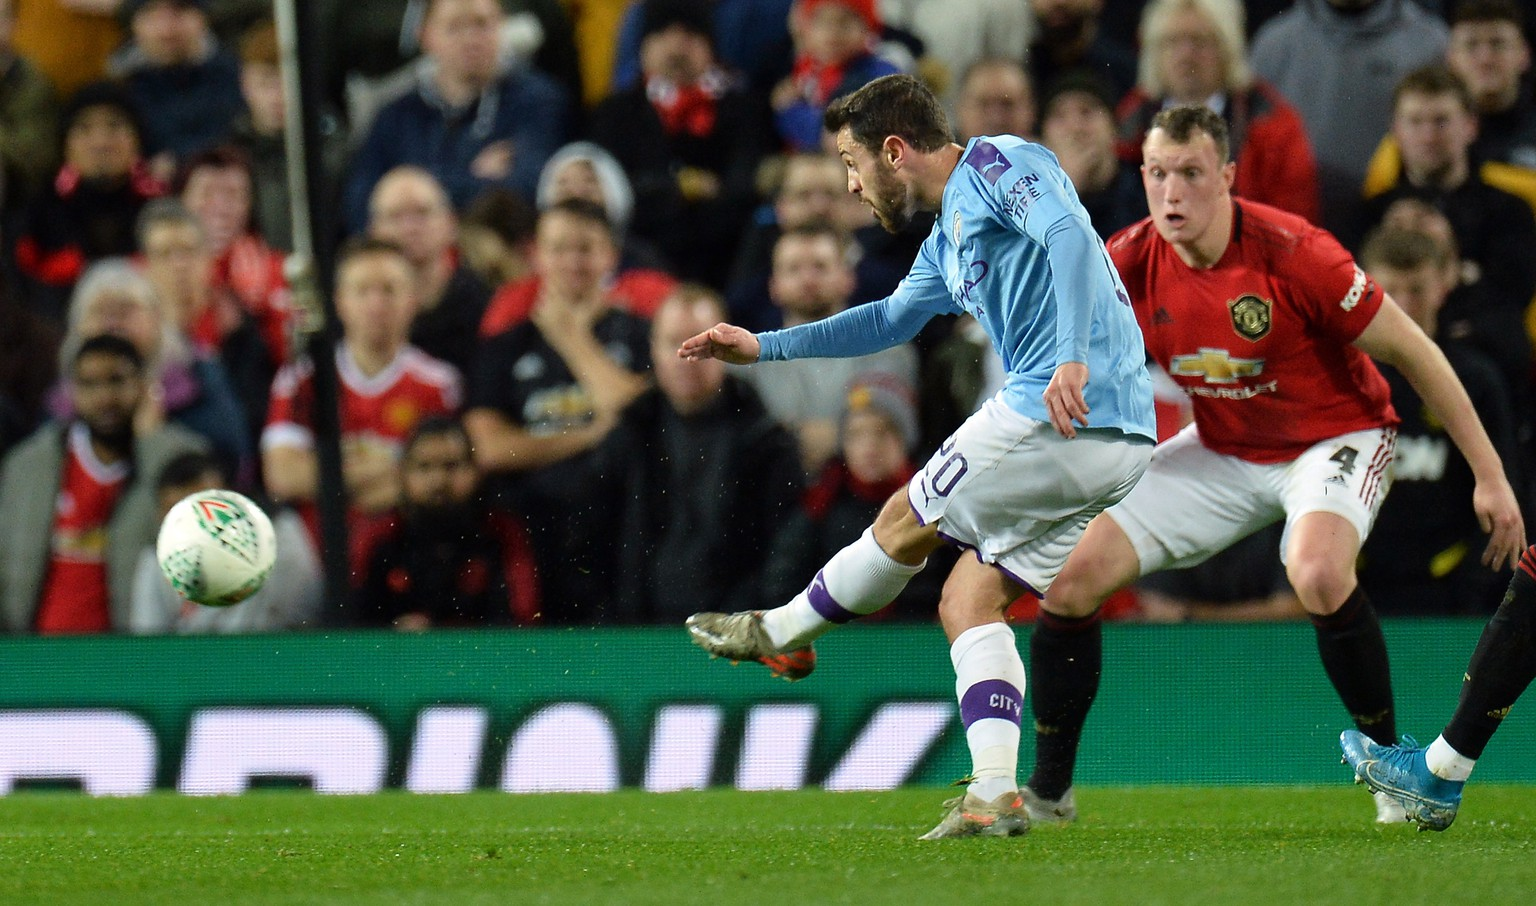 epa08110945 Manchester City's Bernardo Silva (L) scores during the Carabao Cup first round semi-final soccer match between Manchester United and Manchester City held at Old Trafford in Manchester, Britain, 07 January 2020.  EPA/PETER POWELL EDITORIAL USE ONLY.  No use with unauthorized audio, video, data, fixture lists, club/league logos or 'live' services. Online in-match use limited to 120 images, no video emulation. No use in betting, games or single club/league/player publications.